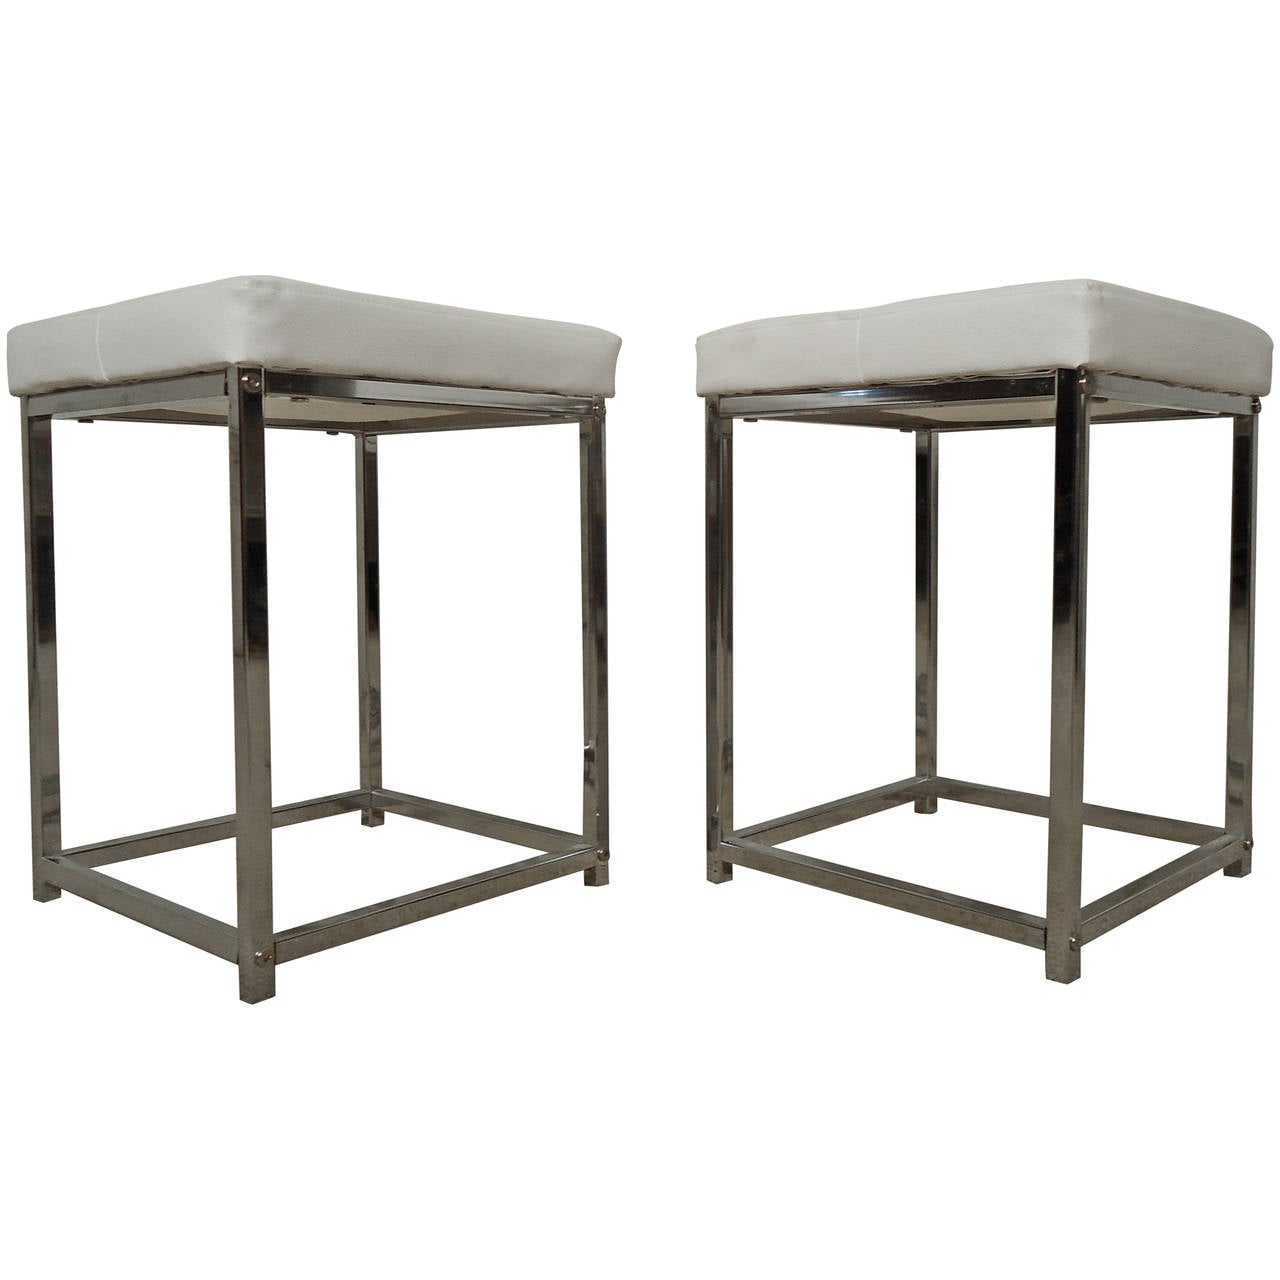 Pair of Baughman Style Midcentury White and Chrome Stools